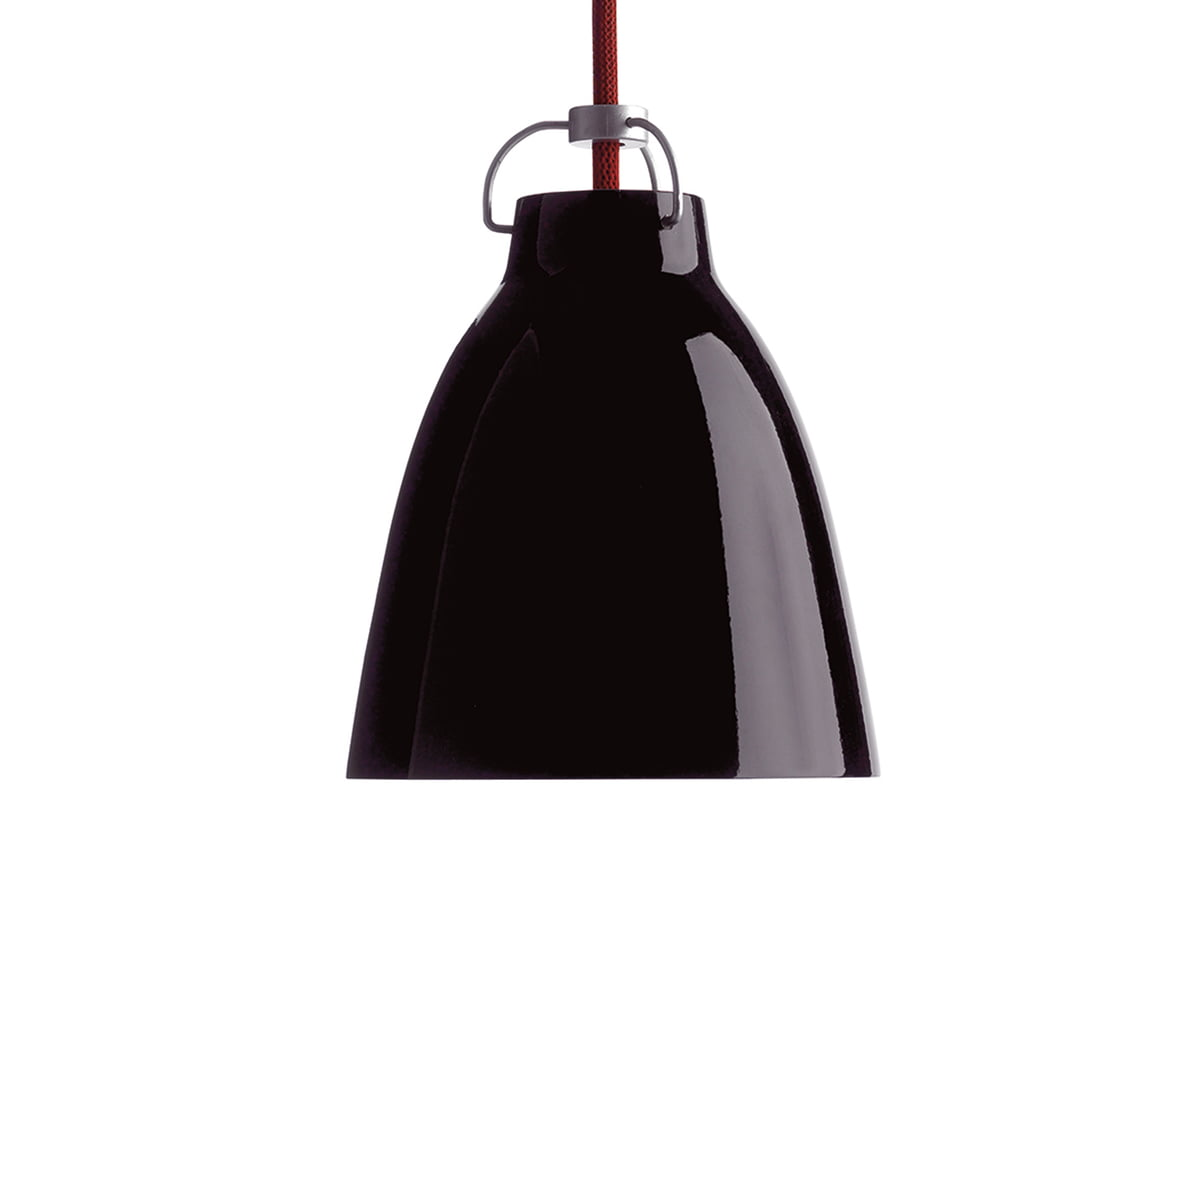 Suspension caravaggio p0 par lightyears for Suspension lumineuse